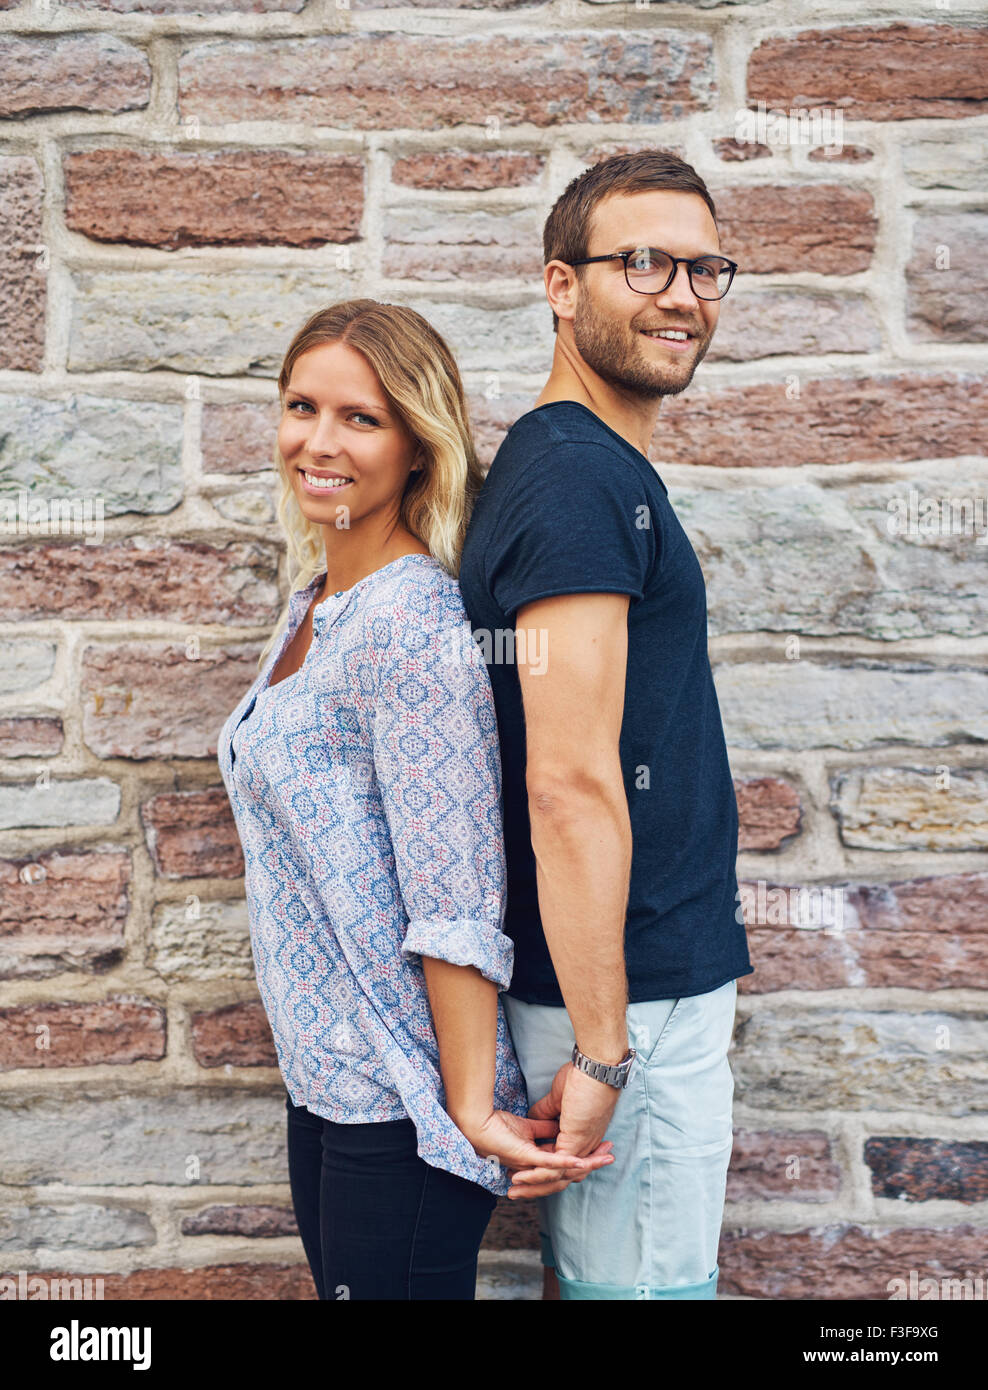 Three Quarter Shot of a Happy Young Couple Standing Back to Back While Holding their Hands and Smiling at the Camera - Stock Image